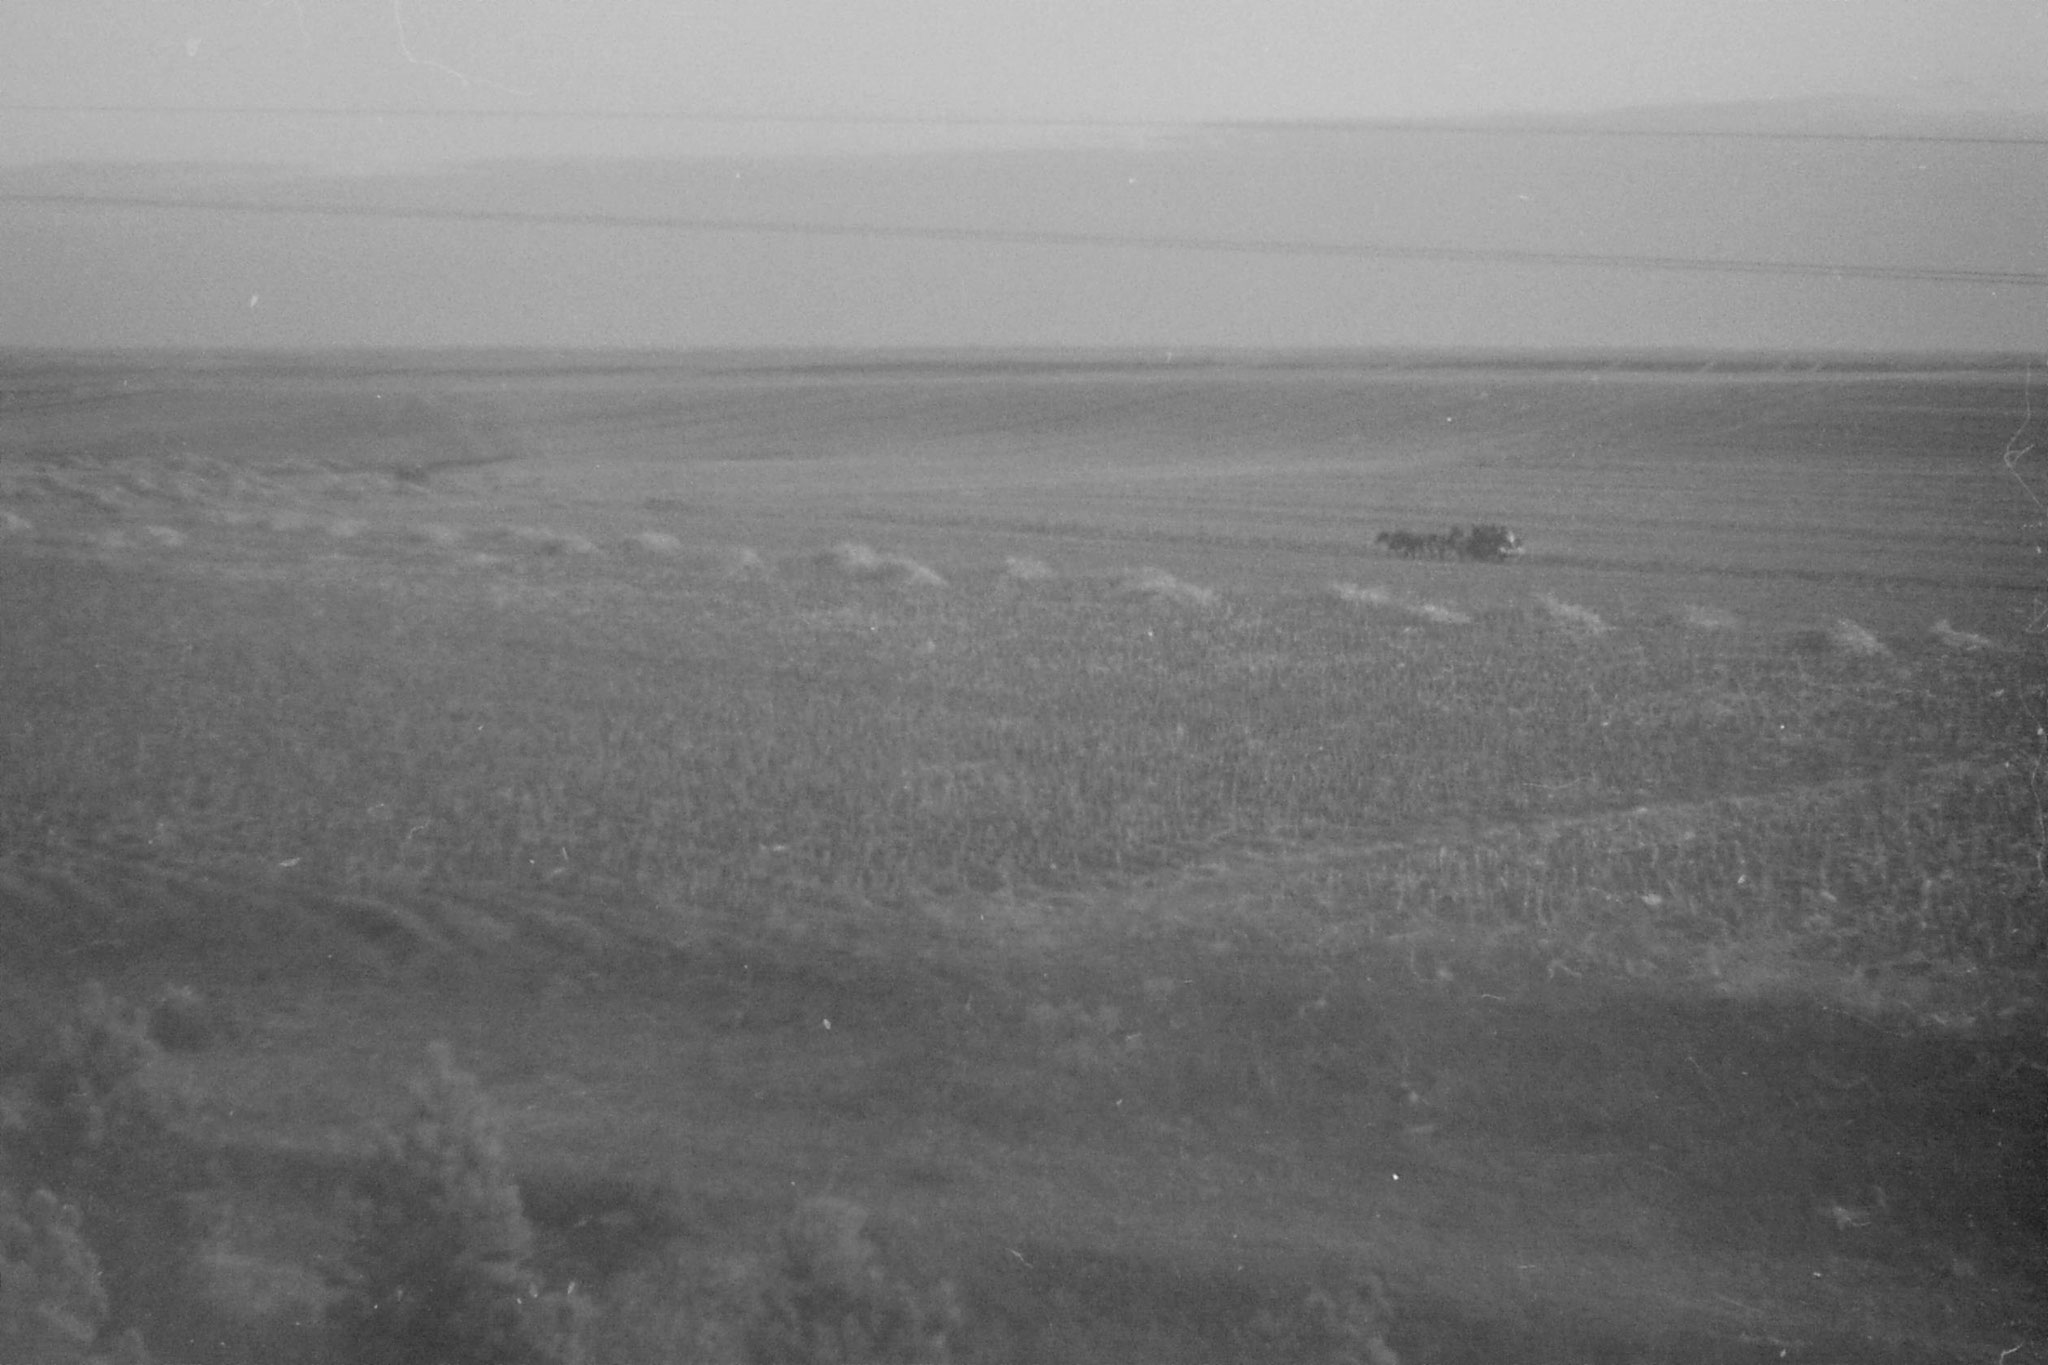 27/10/1988: 28: fields after Harbin